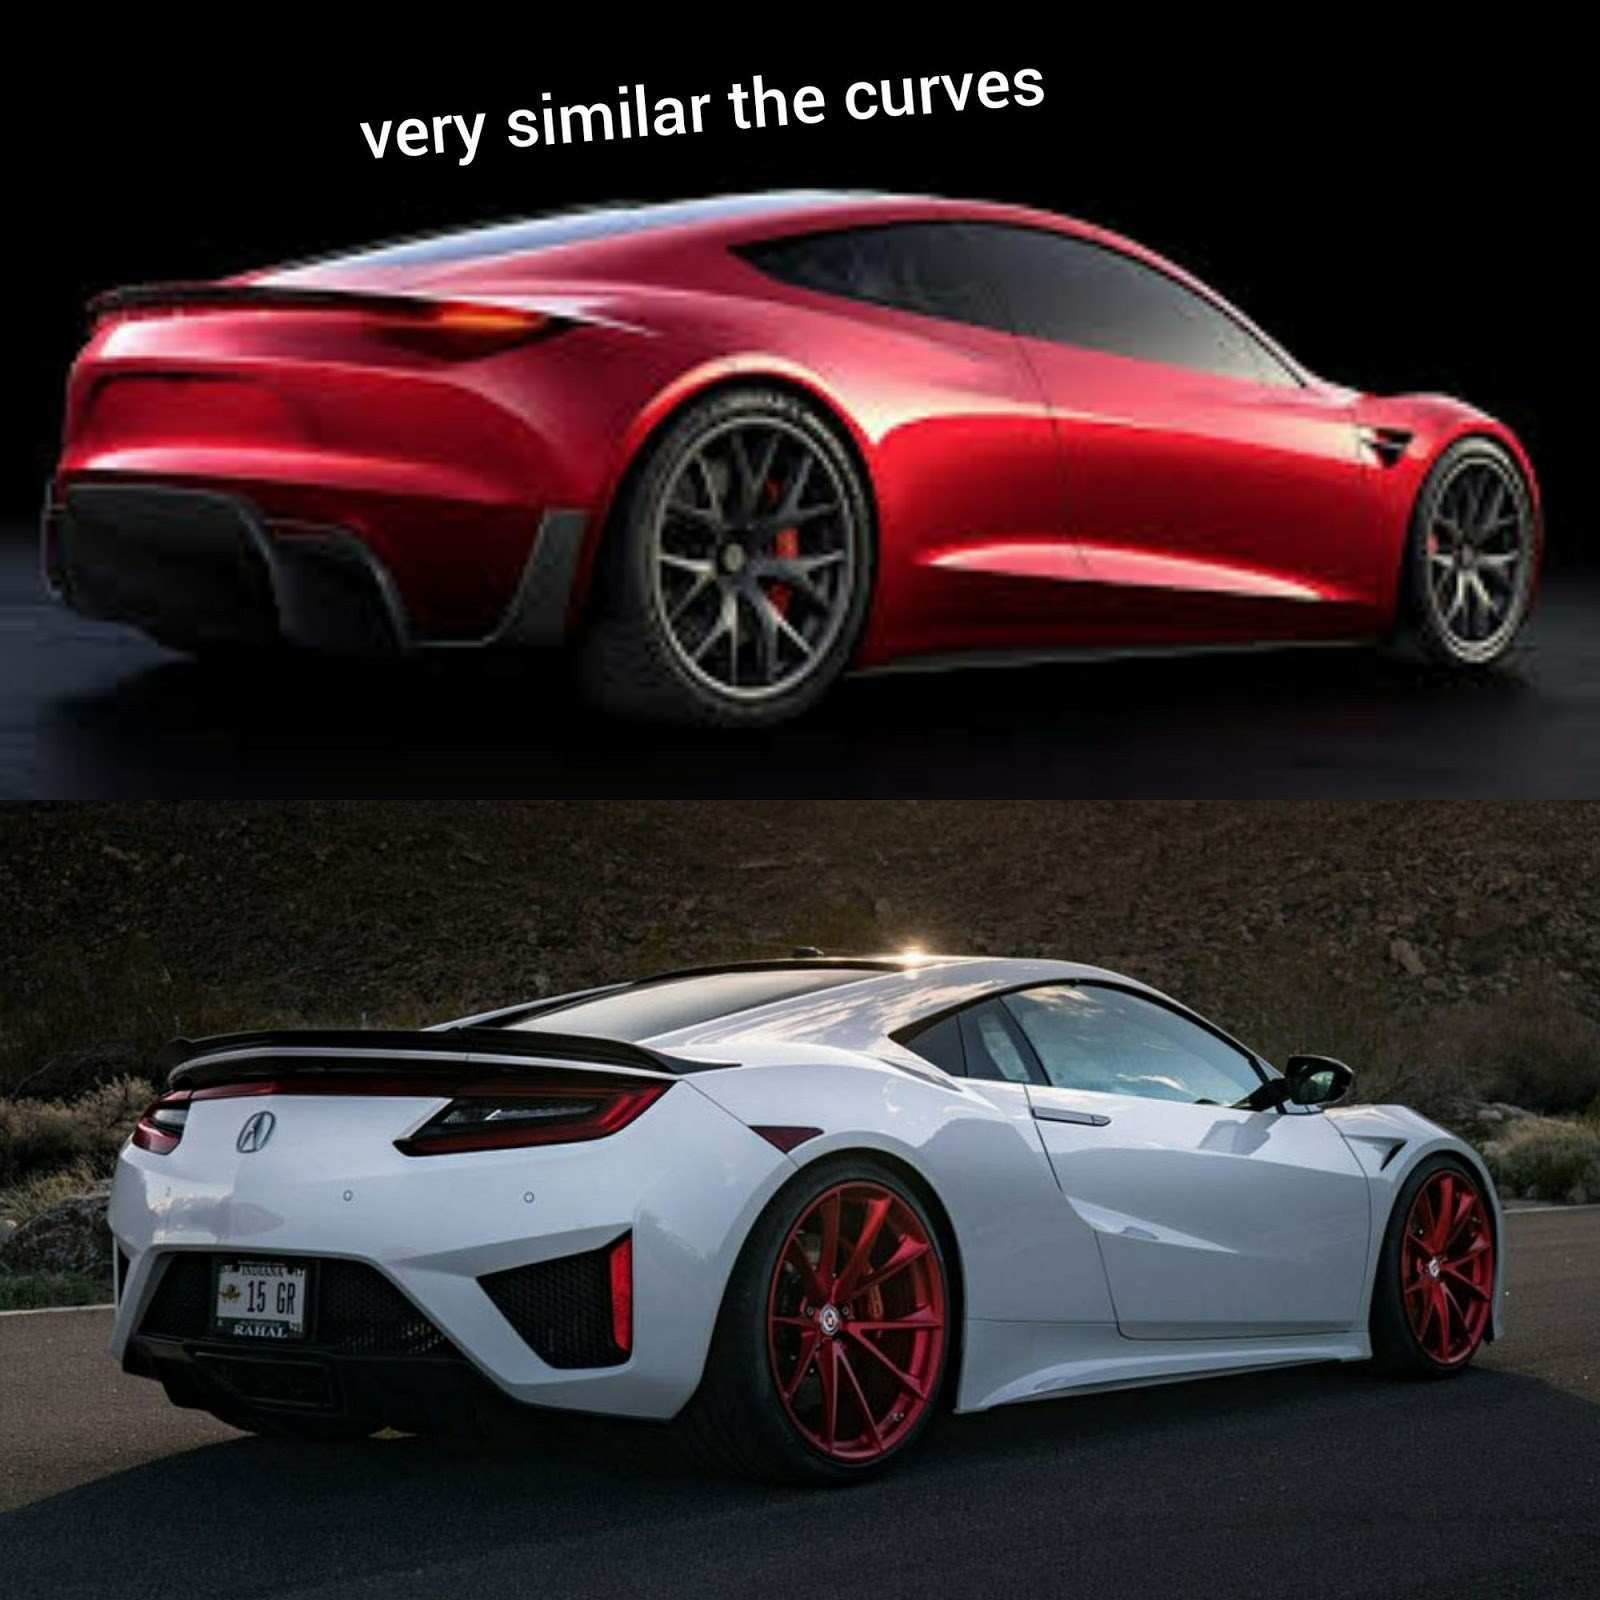 44 Concept of 2020 Acura Nsx Price Overview by 2020 Acura Nsx Price